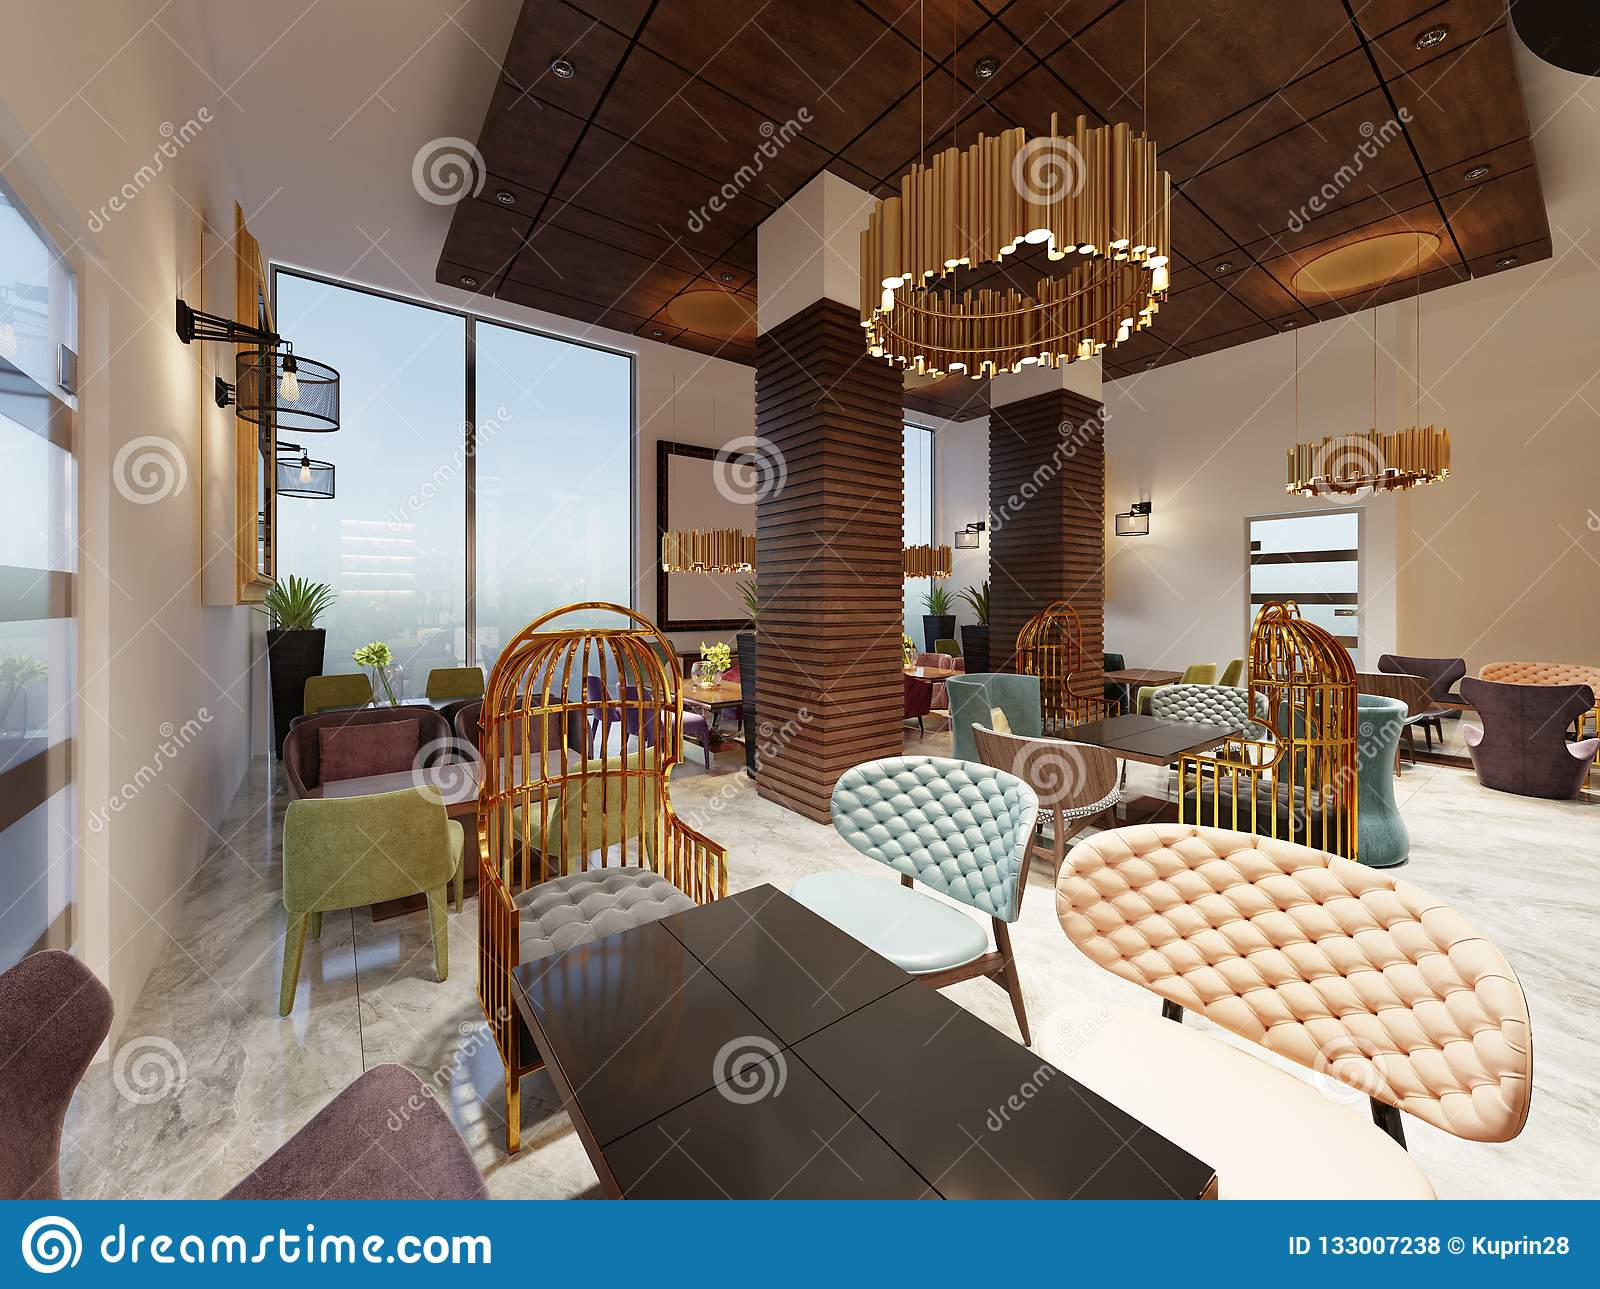 Luxurious Cafe In Modern Style With Colorful Furniture And Designer Gold  Chandeliers. Wooden Panels On Columns And Ceiling. 3d Rendering